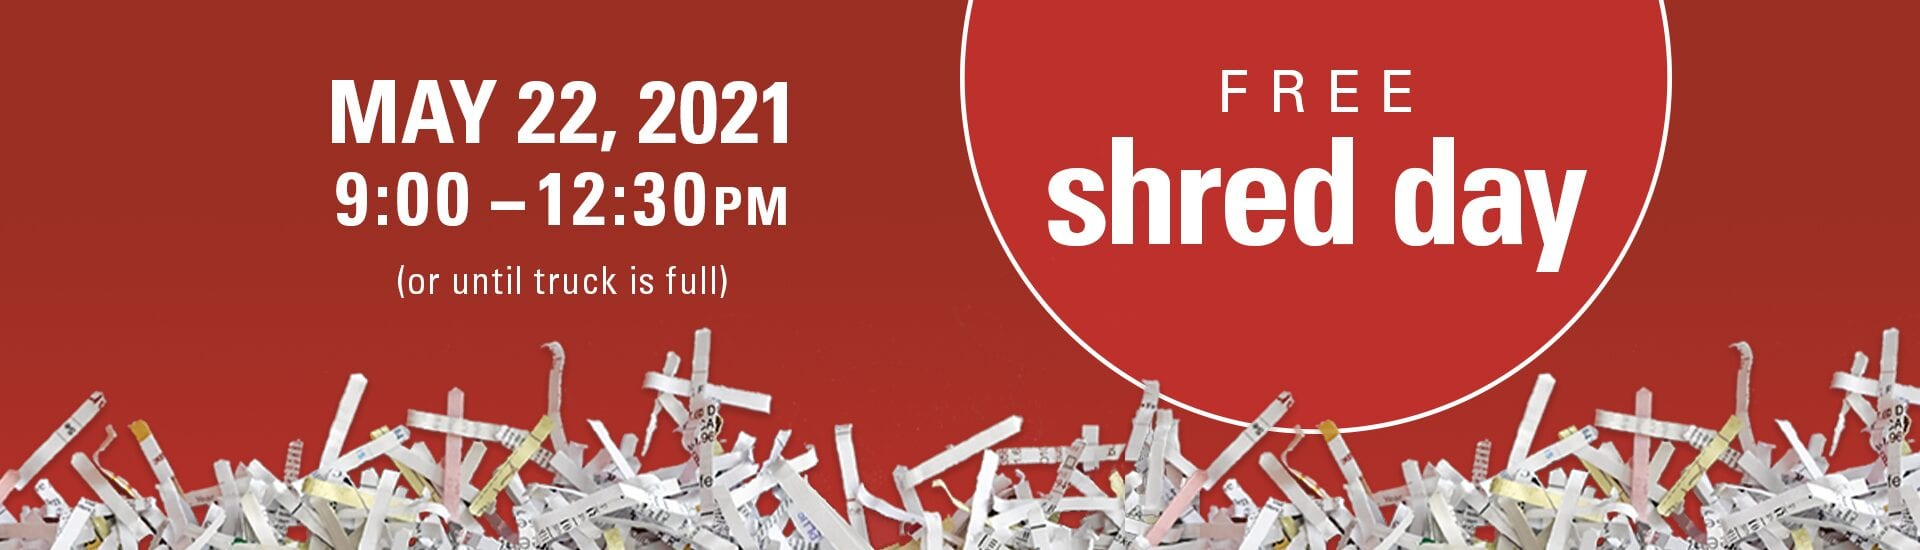 Free Shred Day Event May 22, 2021 from 9:30 a.m. to 12:30 p.m.